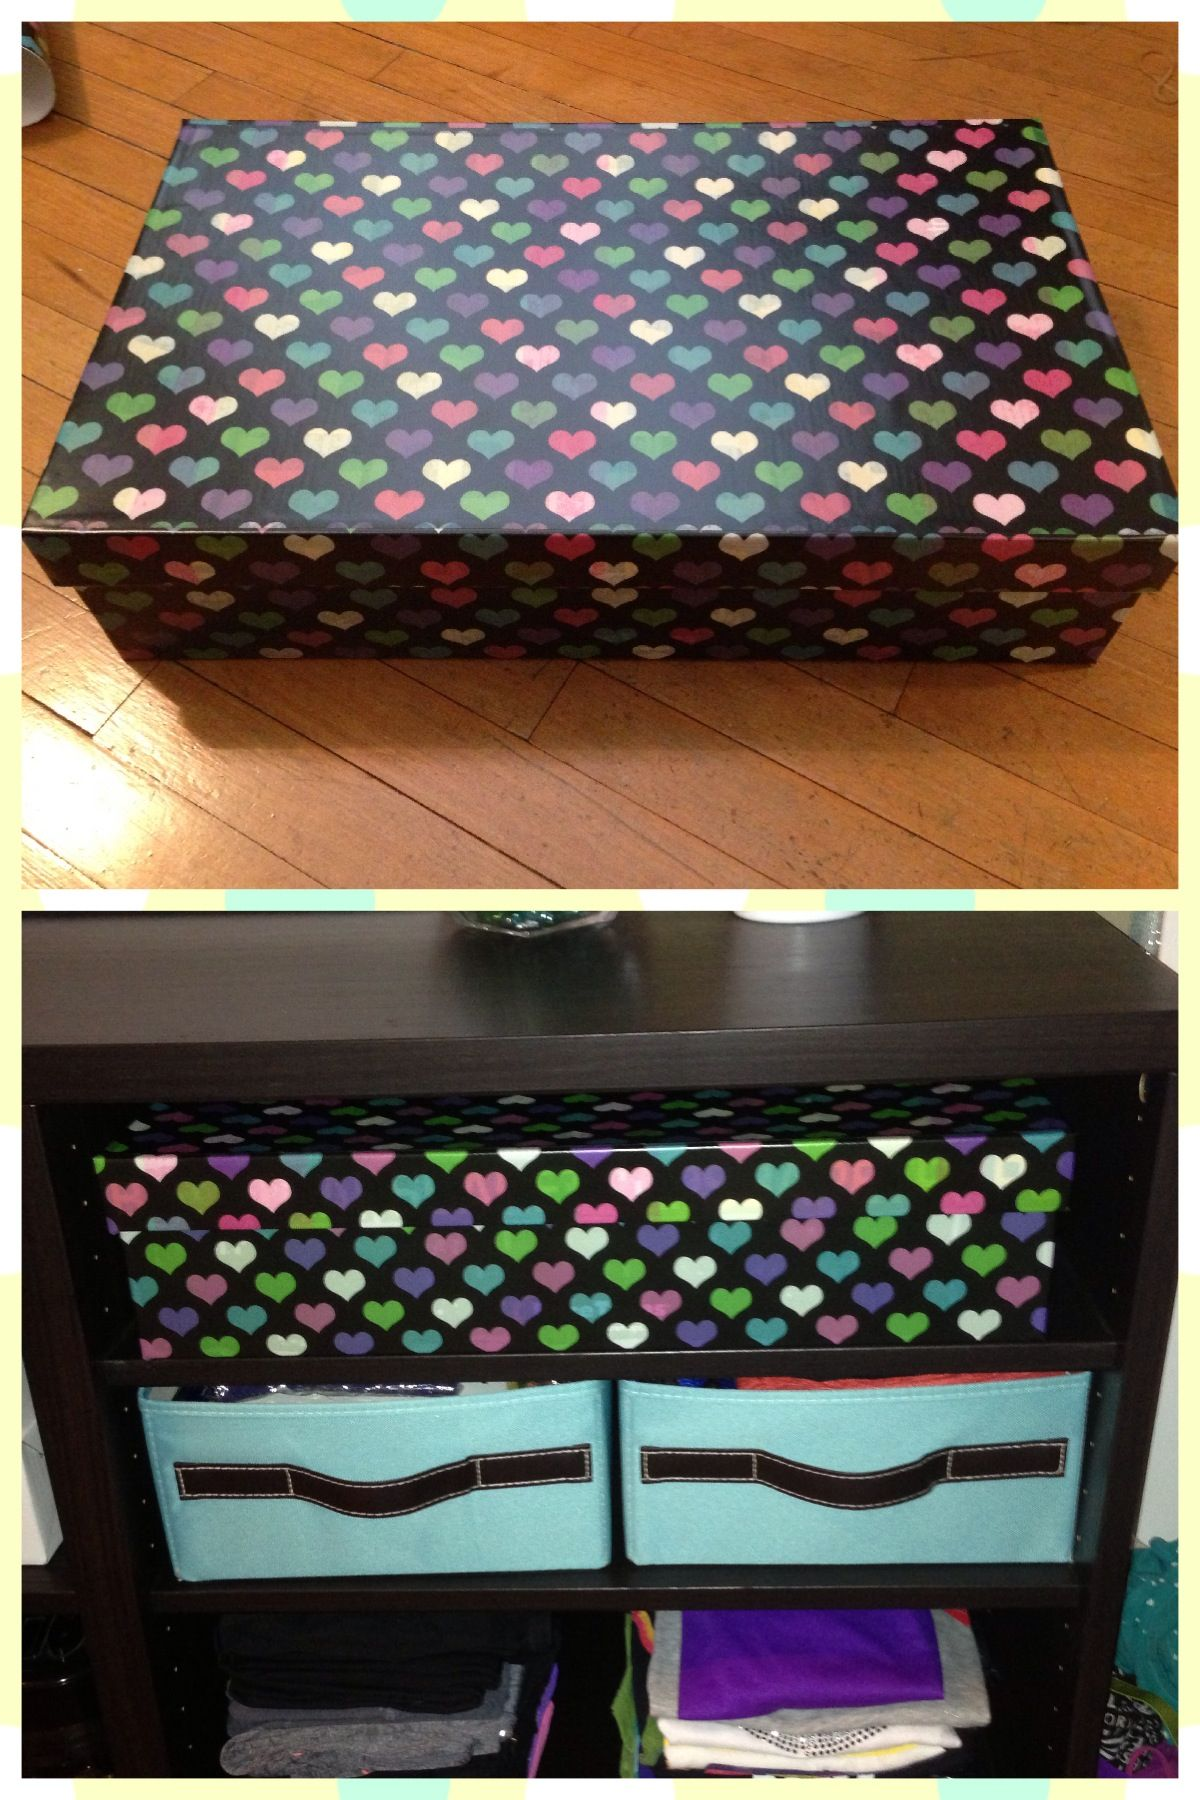 Diy recovered a shoe box with contact paperand voila